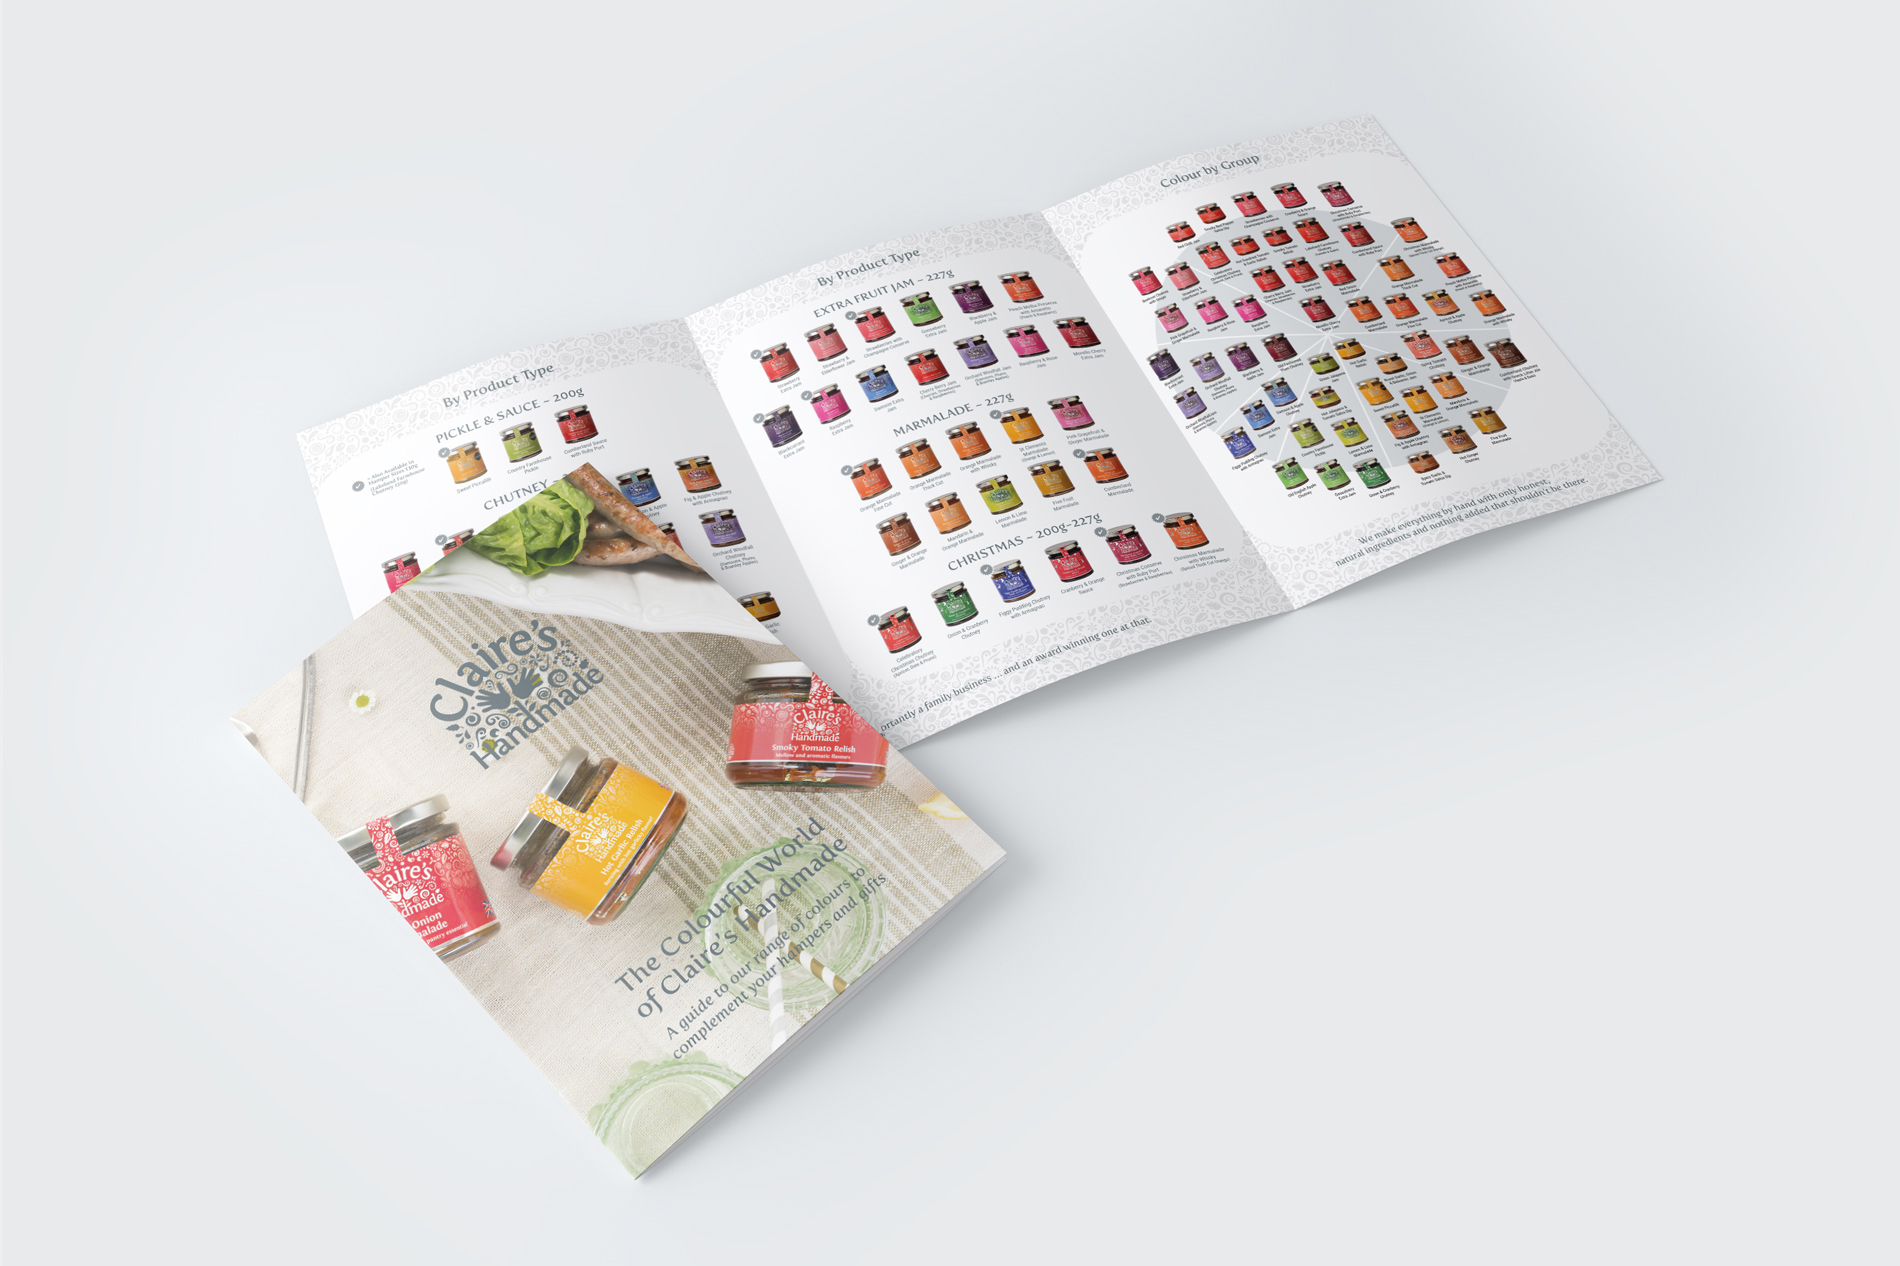 Claire's Handmade Product Range Colour Chart Design